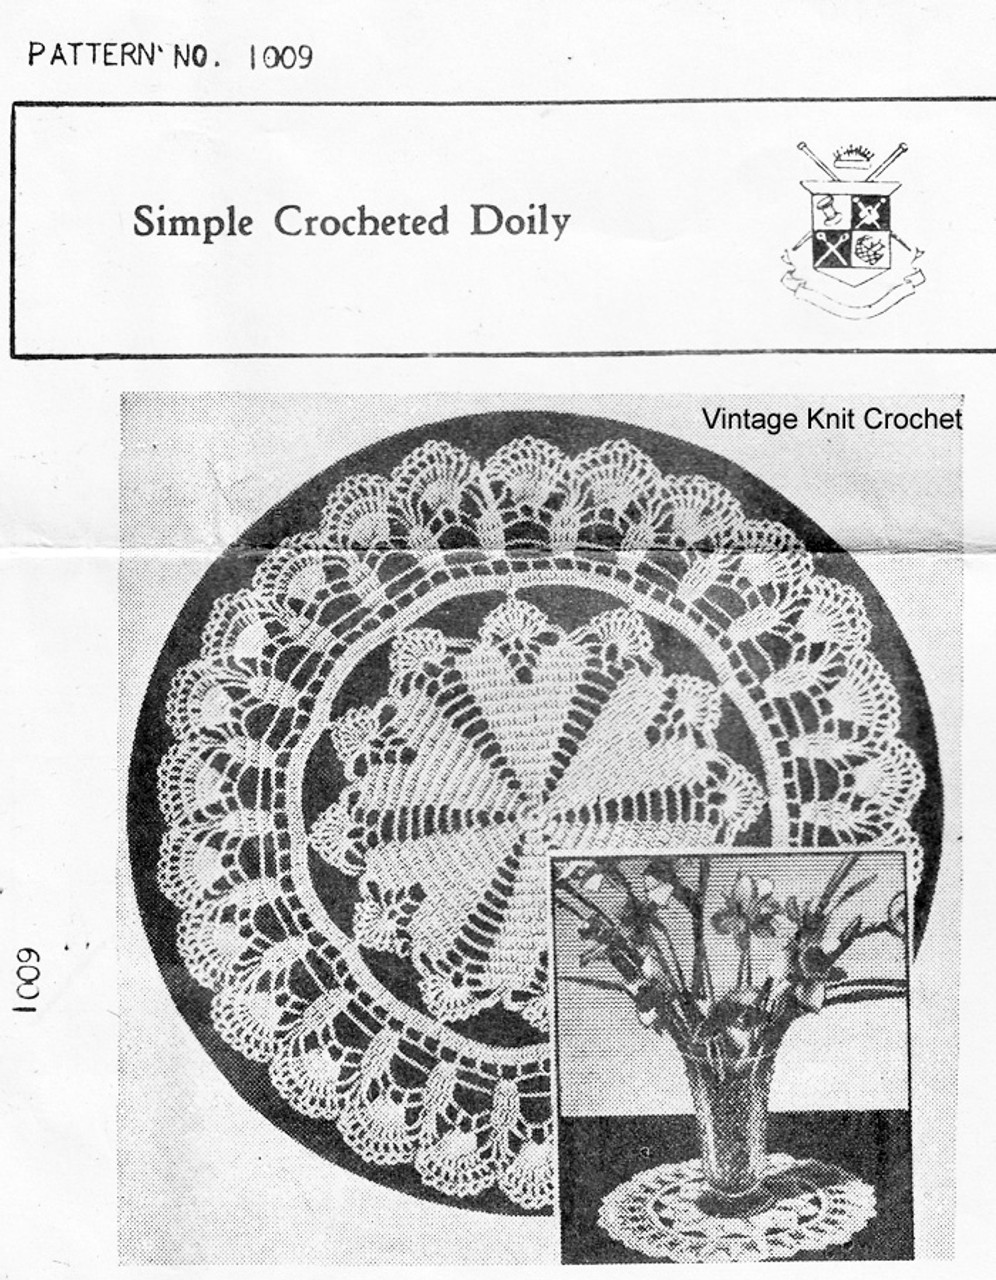 Simple Crochet Doily Pattern, Mail Order 1009